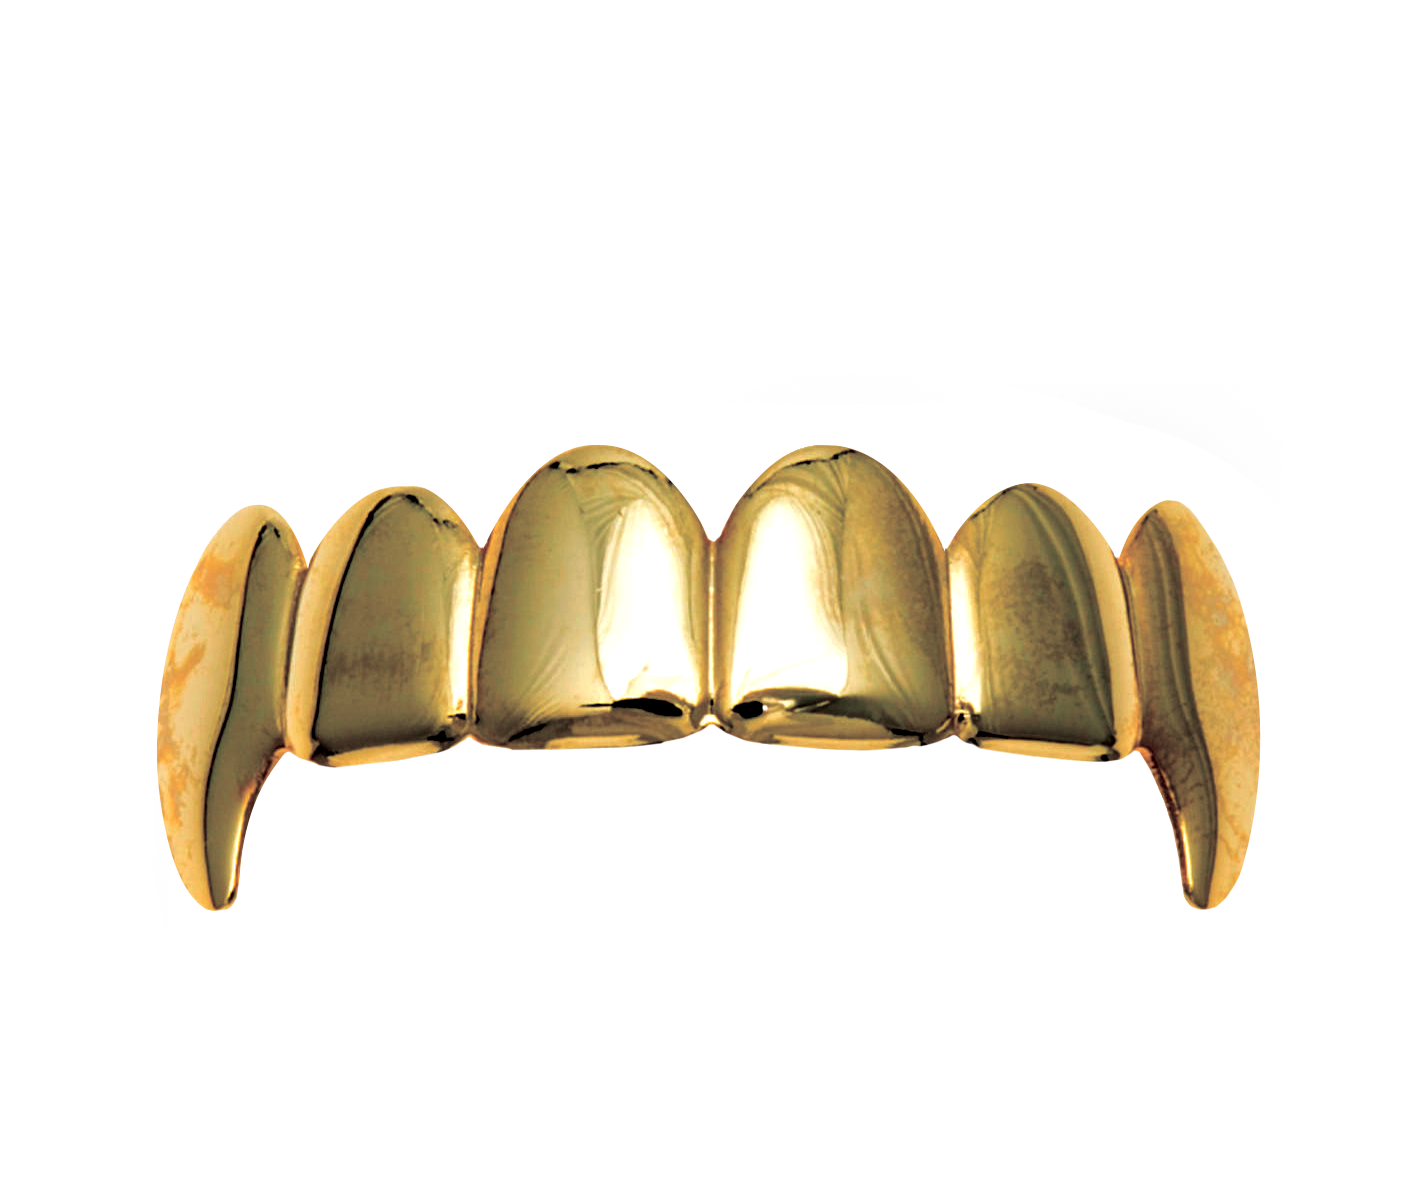 Teeth grills png. Gold grill jewellery tooth